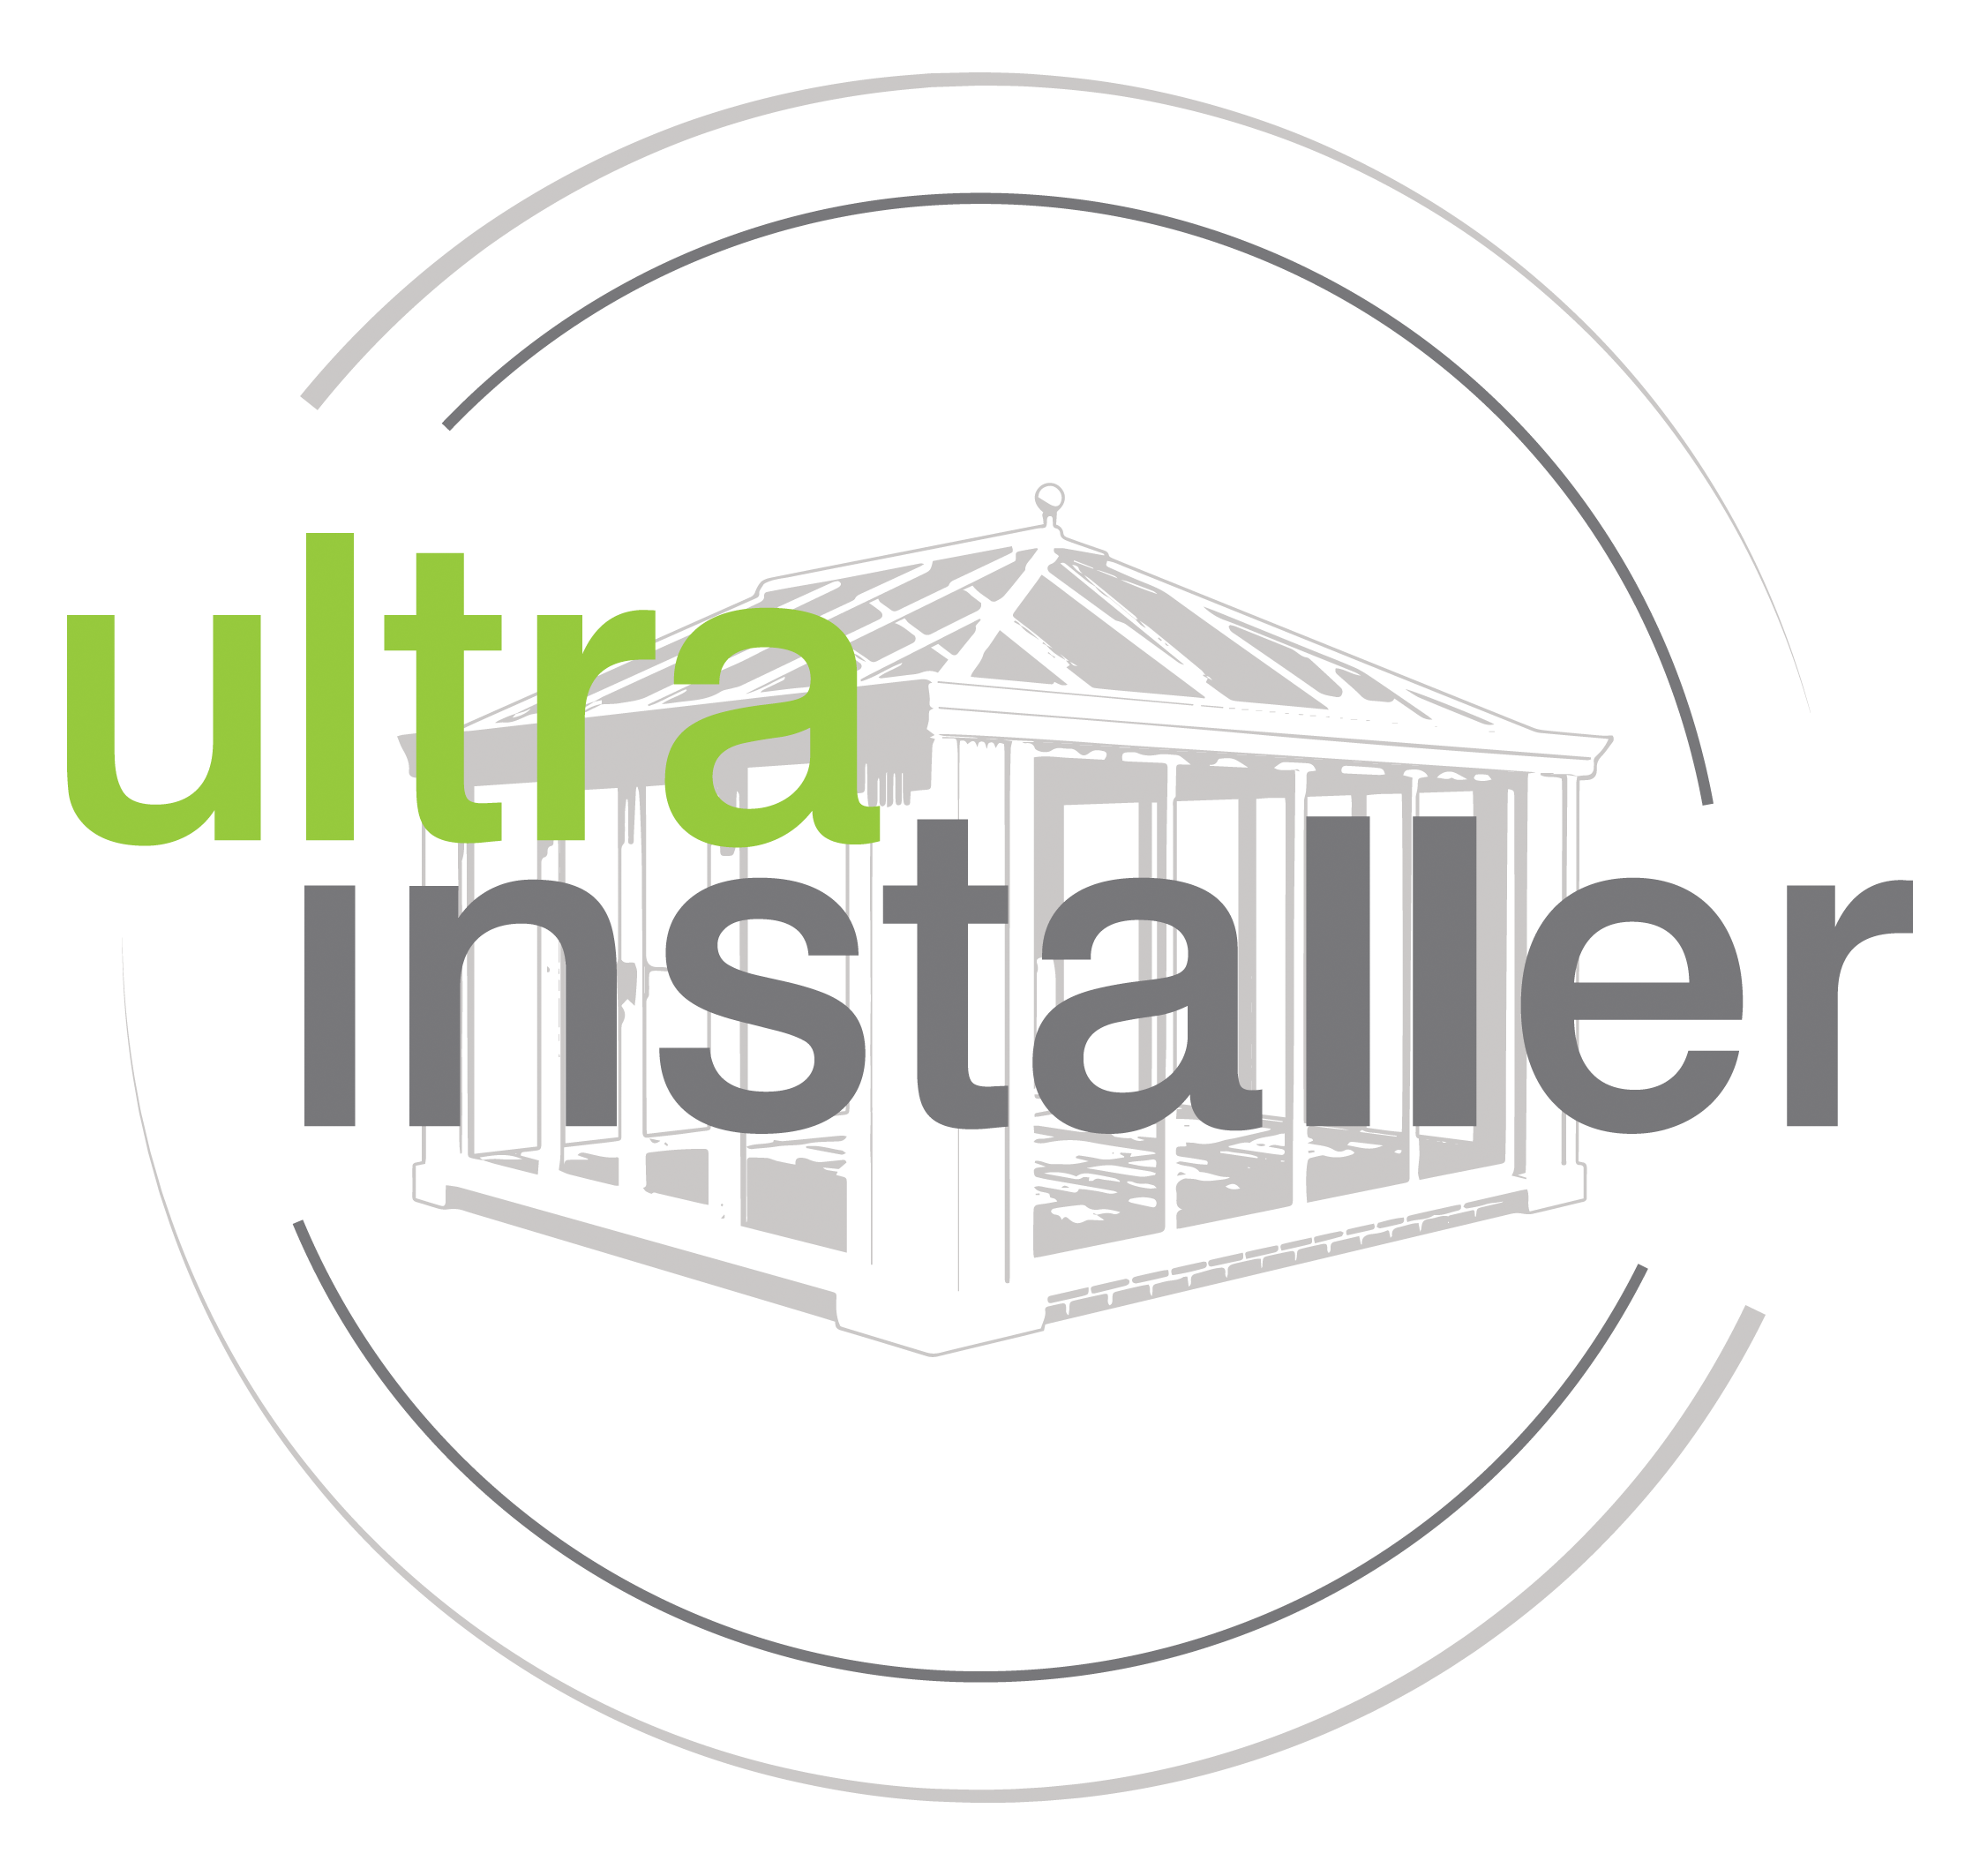 ultra installer logo